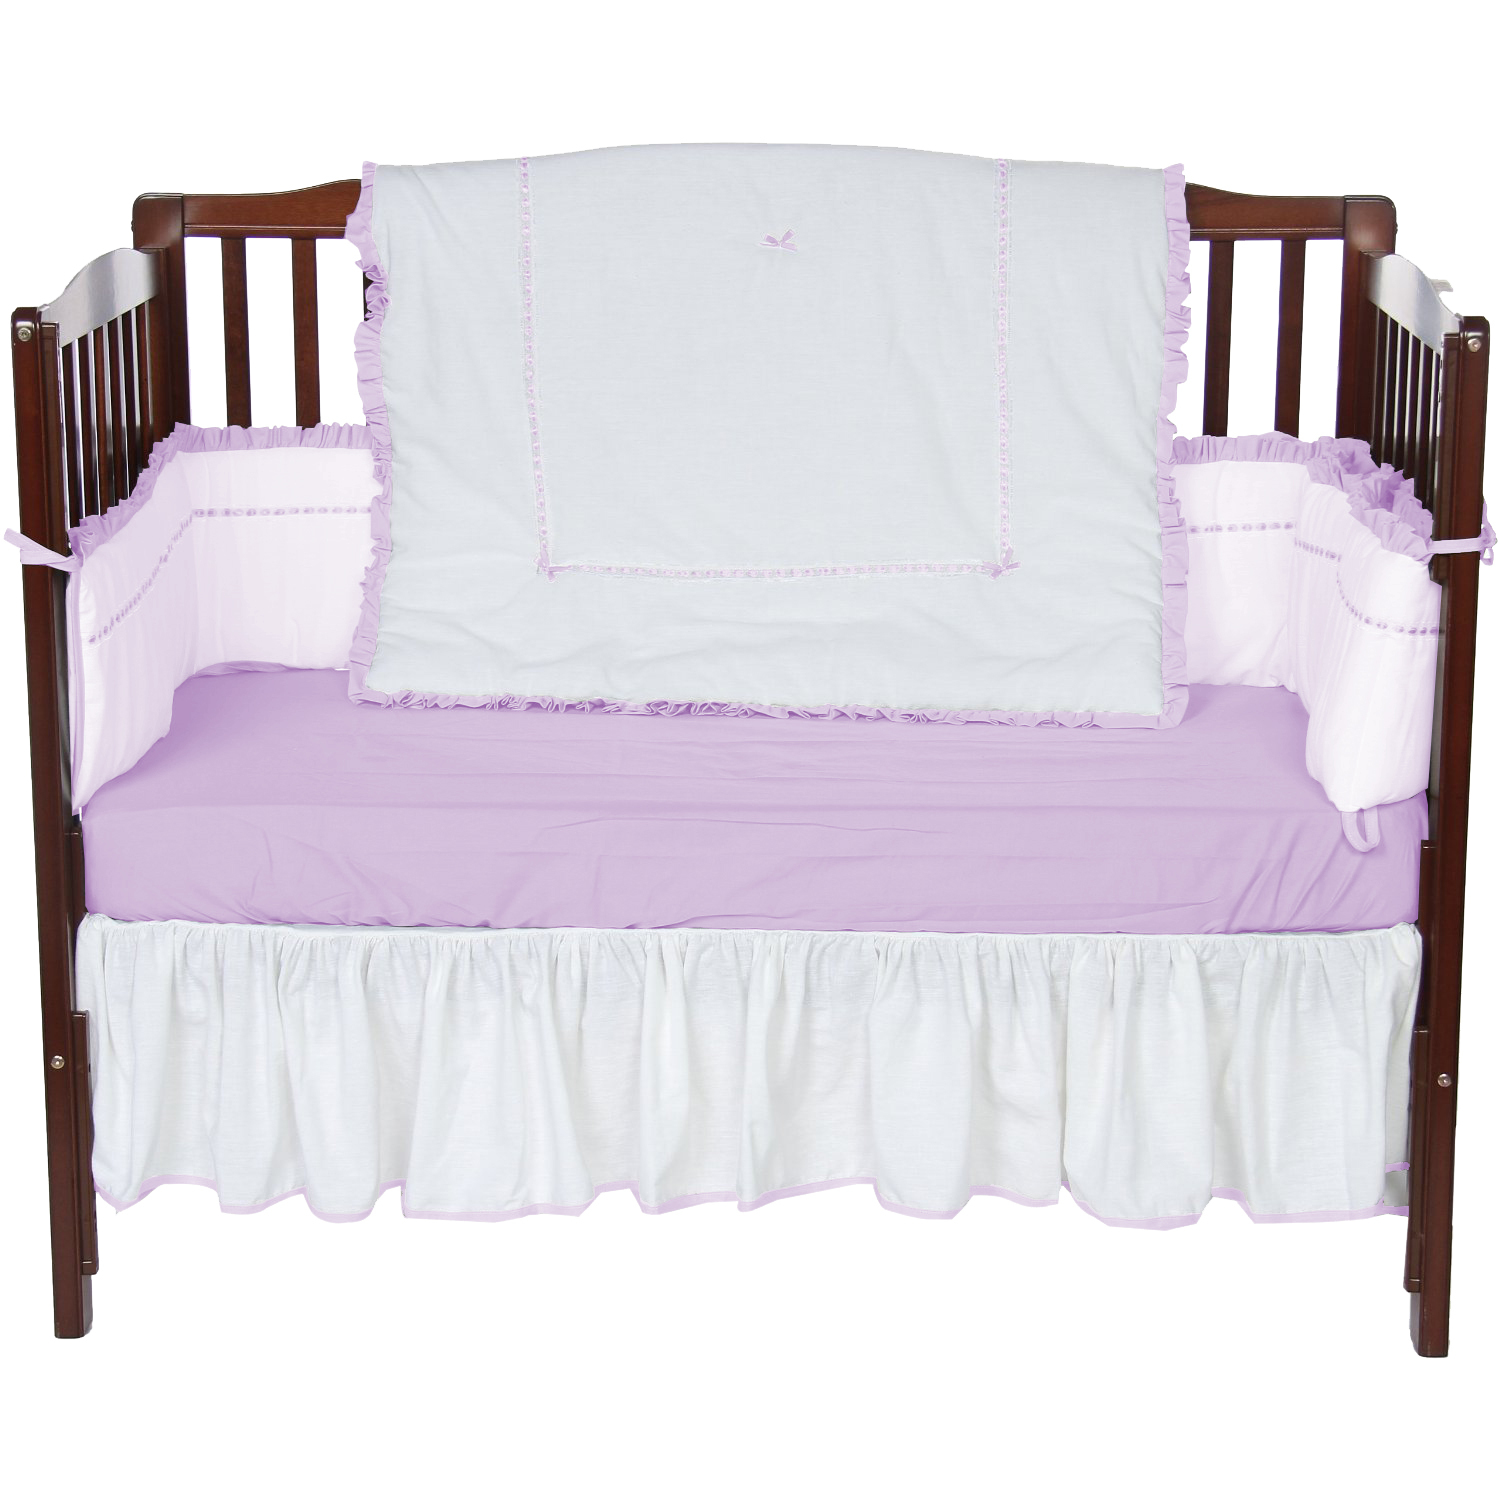 Baby Doll Bedding Unique 4 Piece Crib Bedding Set in Lavender by Baby Doll Bedding